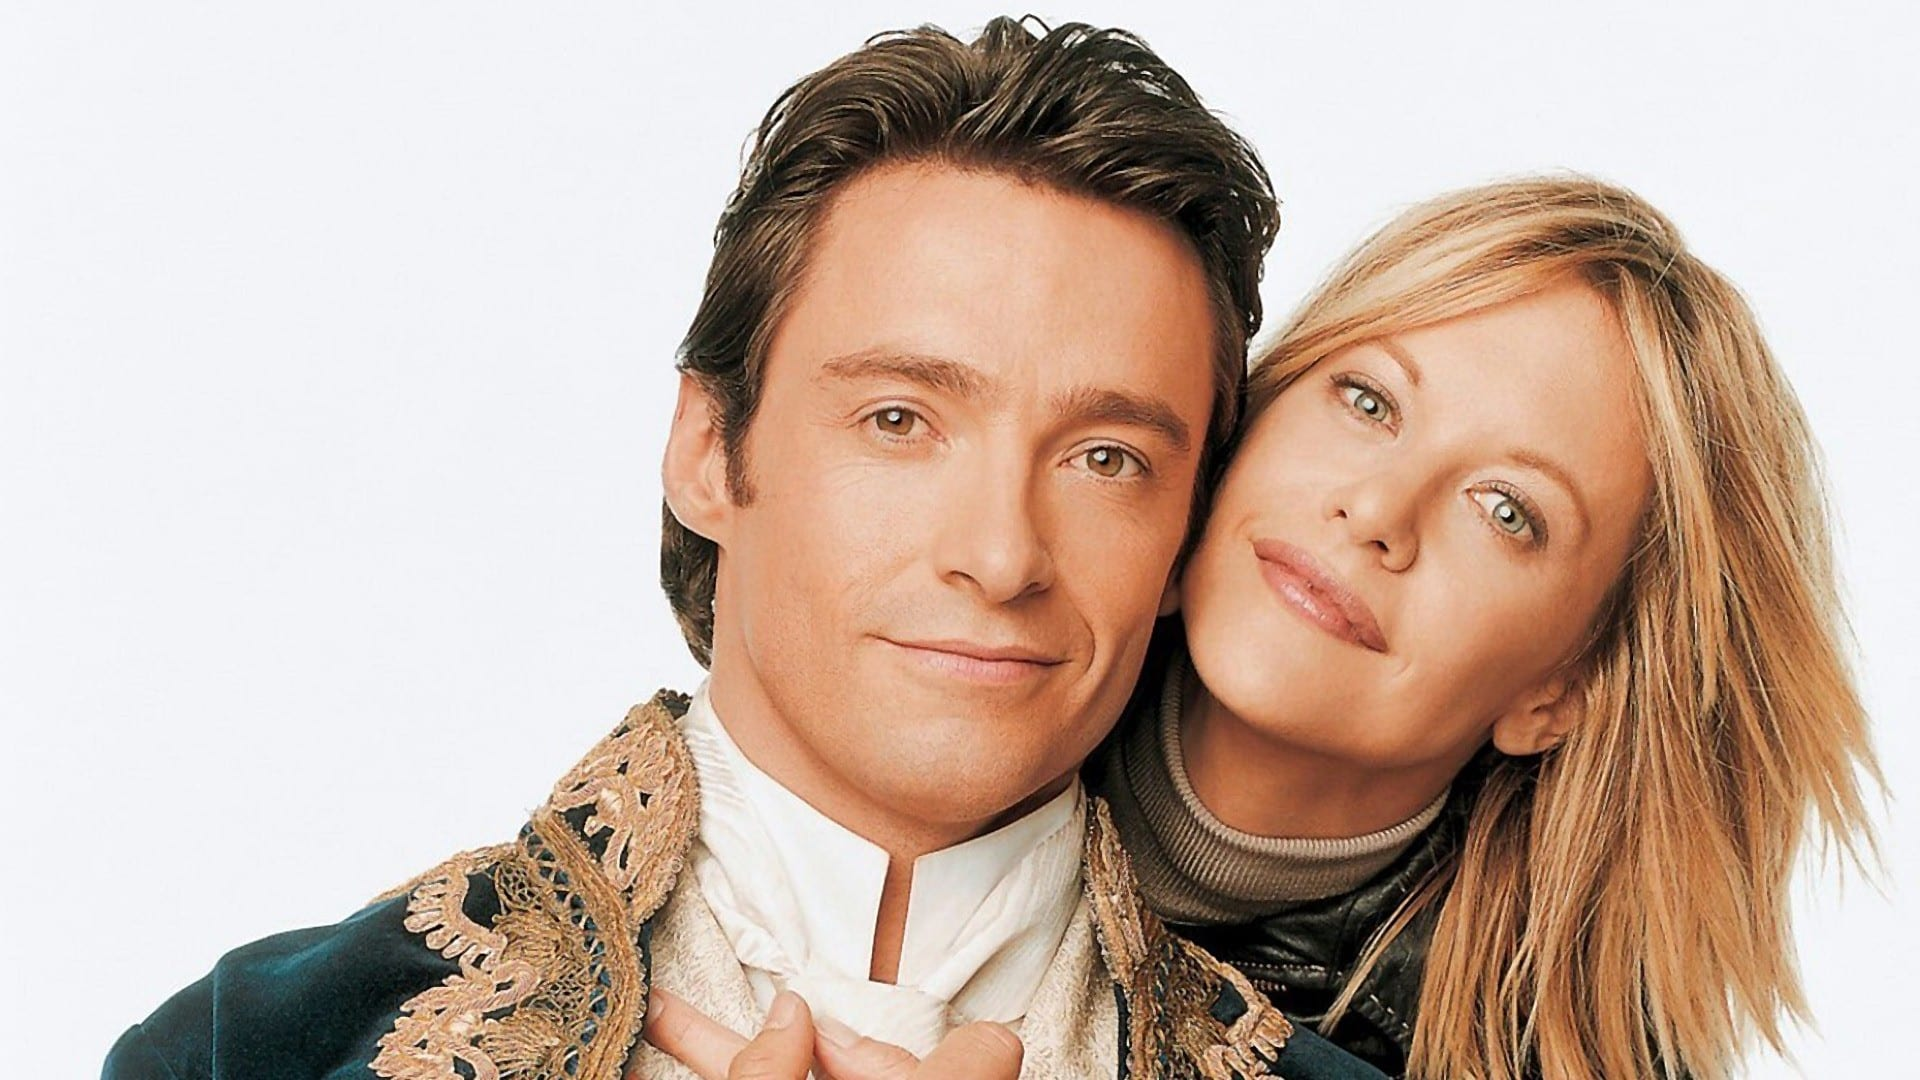 Leopold (Hugh Jackman) travelled thrugh time from the 19th Century to romance modern girl Kate (Meg Ryan) in Kate & Leopold (2001)